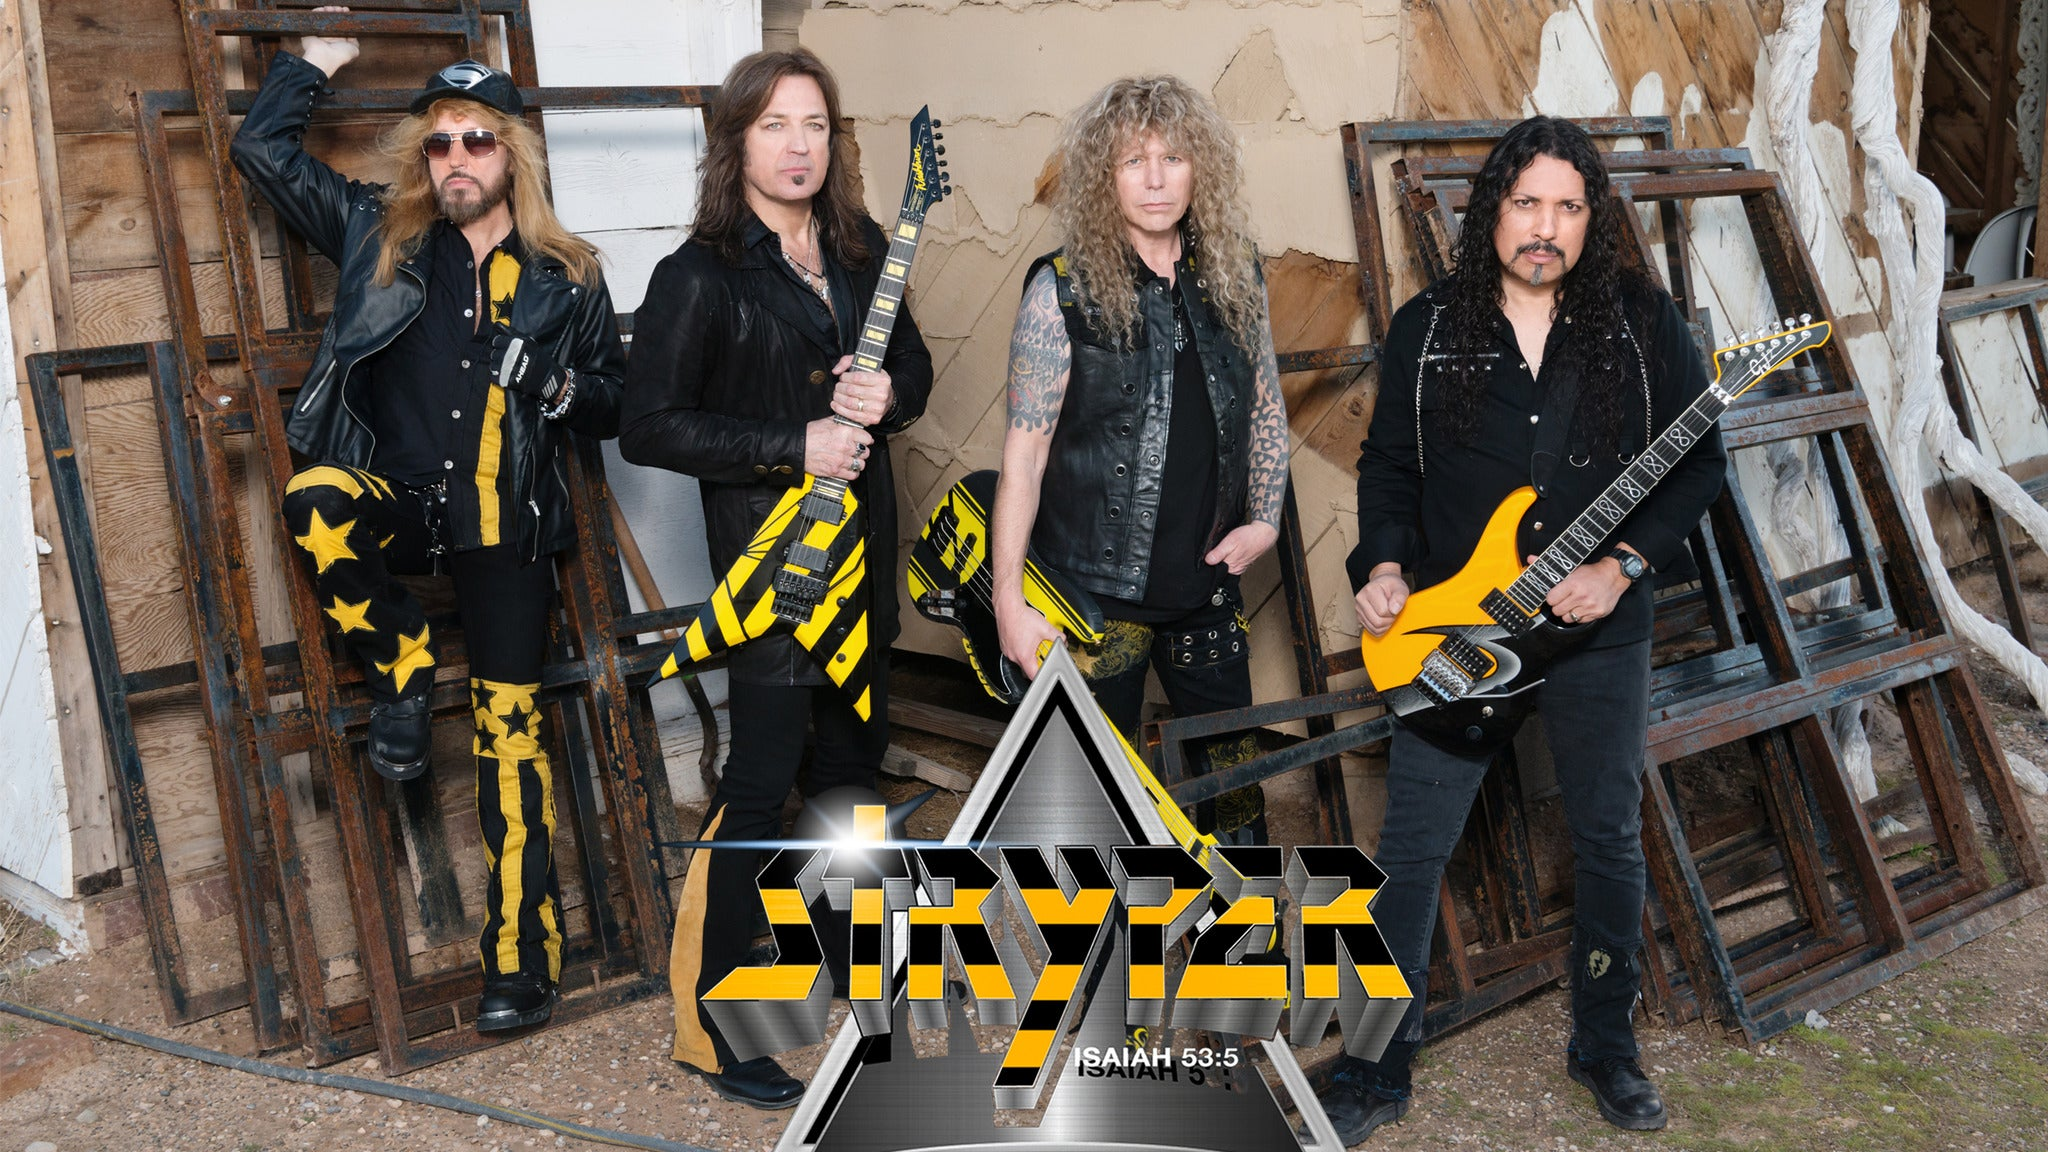 Stryper, Worldview, T Clemente Band, The Sky Club